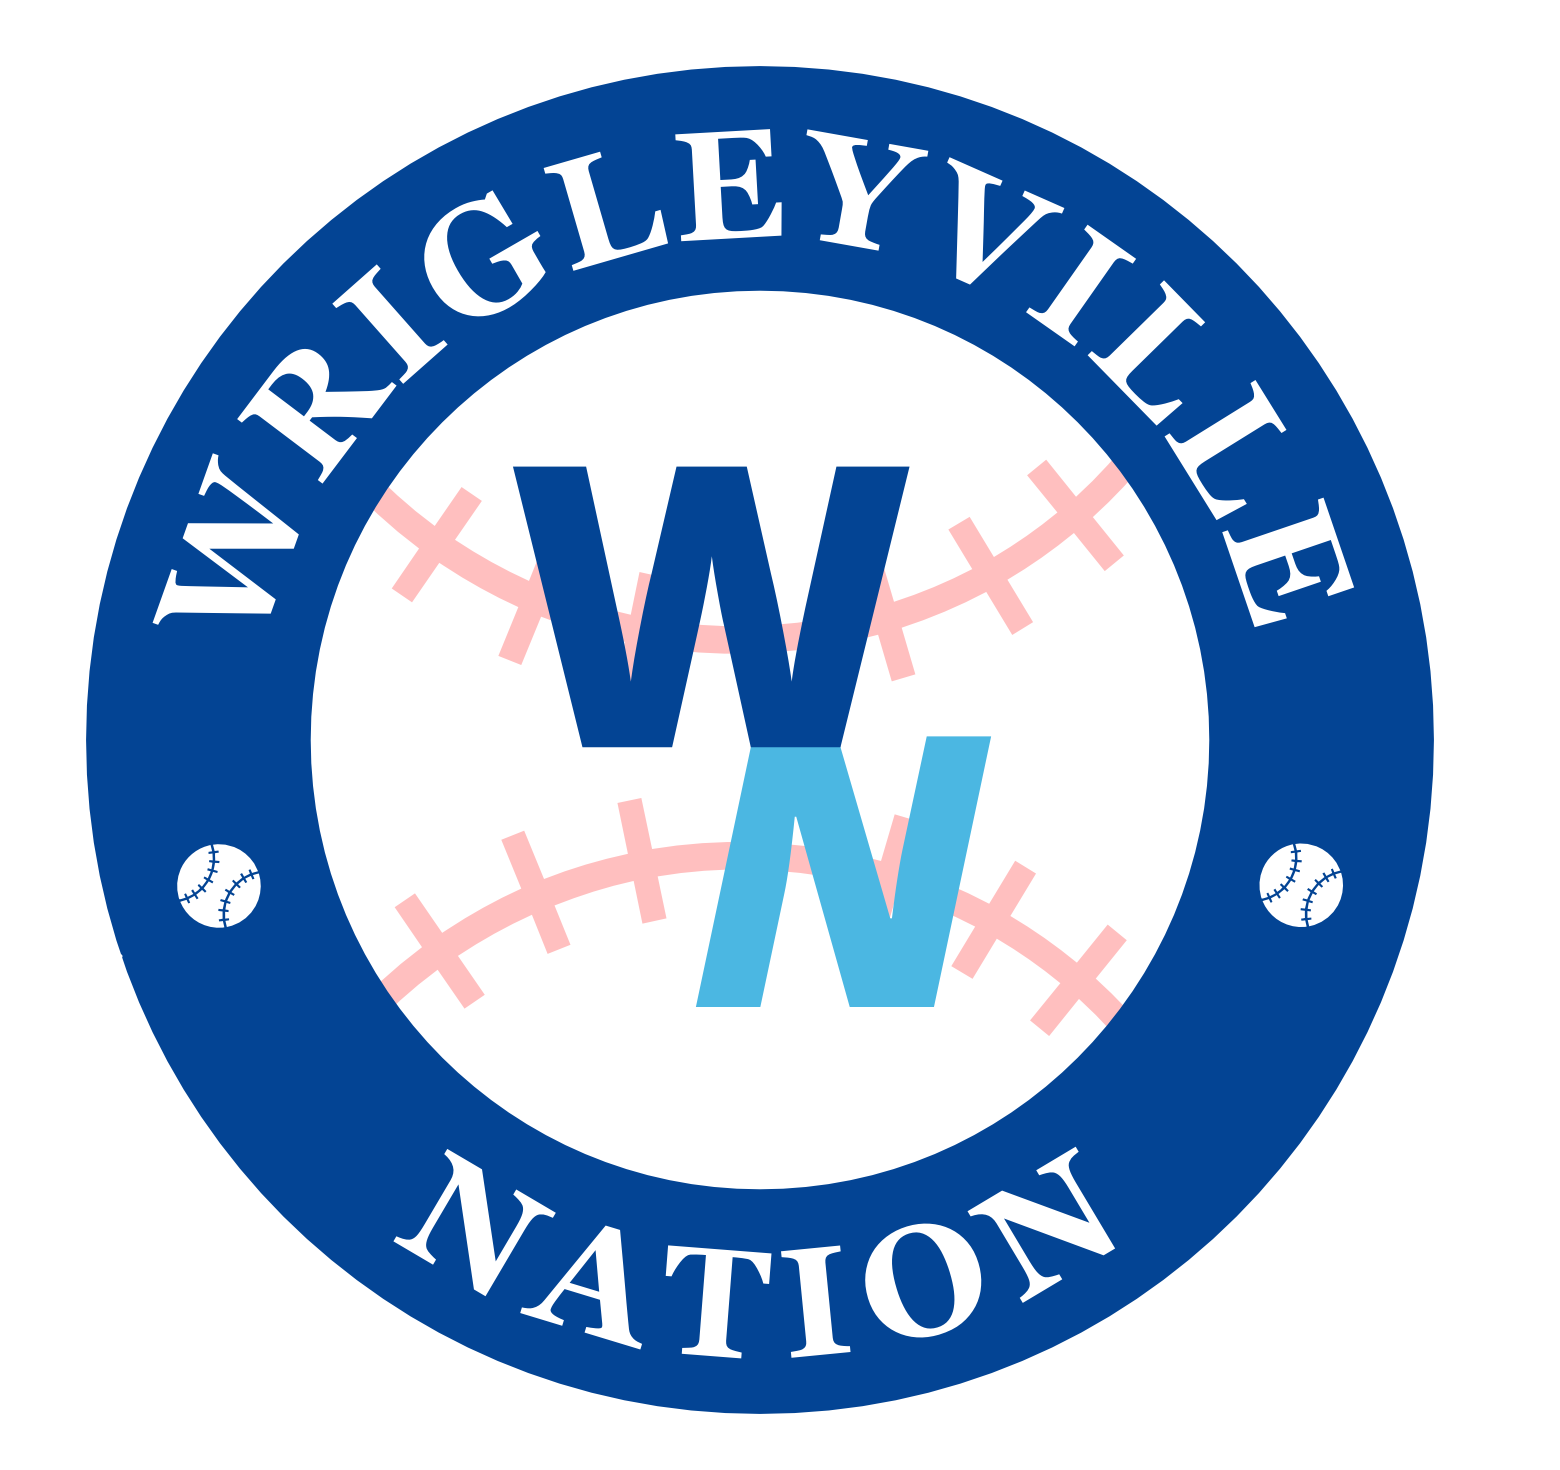 Wrigleyville Nation Ep 206 - Guest: Bill Marovitz, Trade Deadline, Injuries, Cubs Sweep Brewers show art